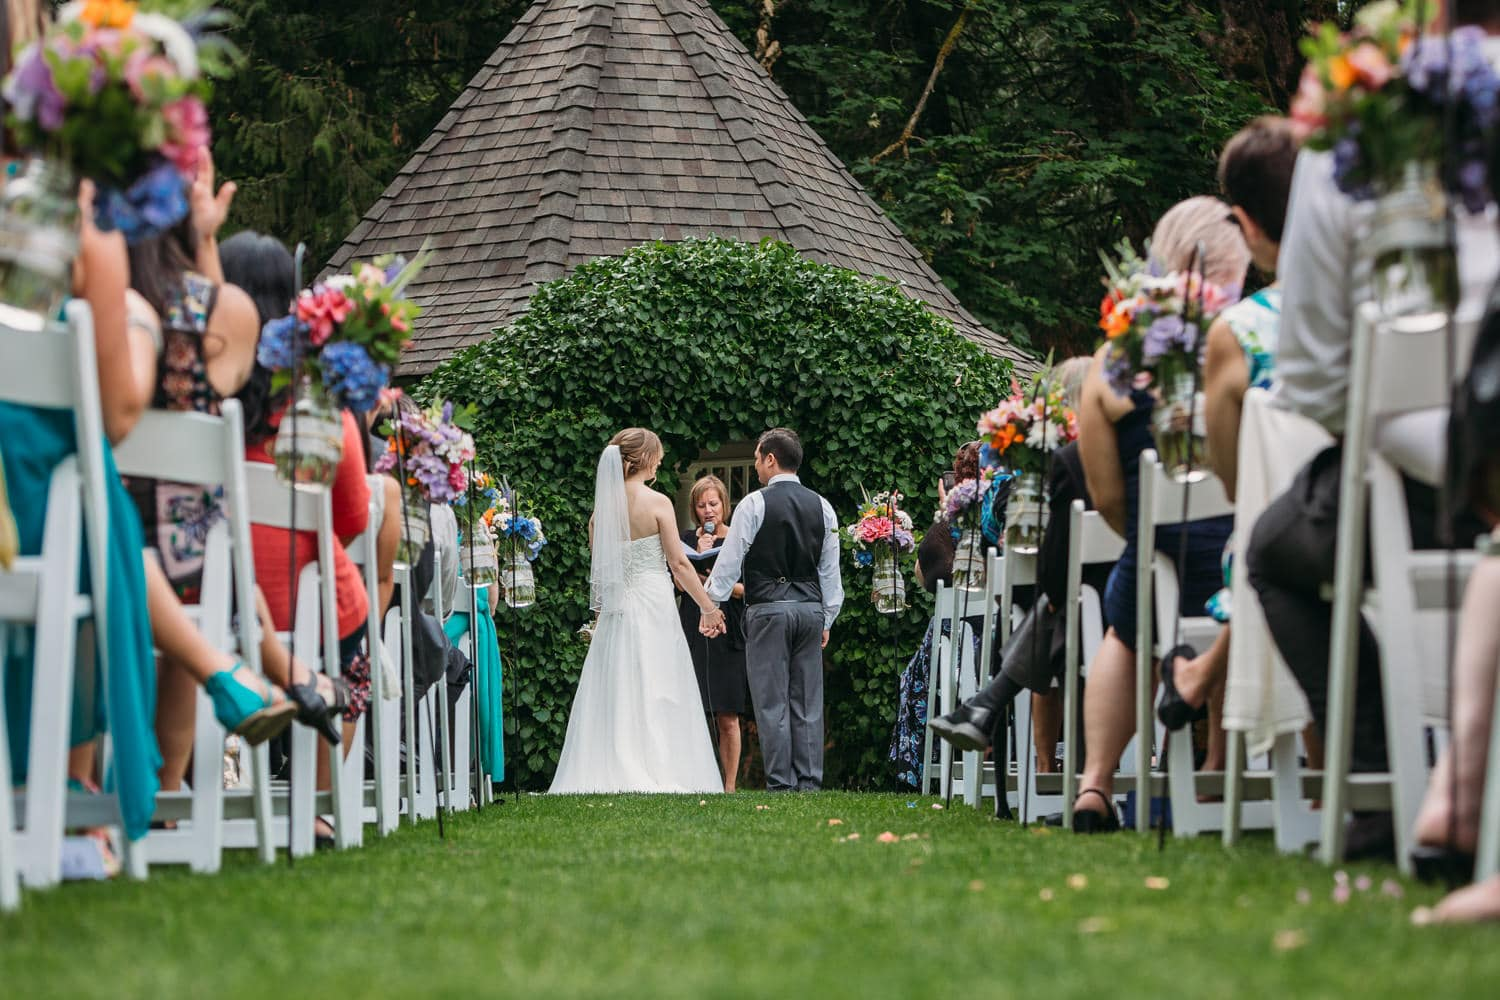 heronsbridge in abbotsford outdoor wedding ceremony with joanne knight